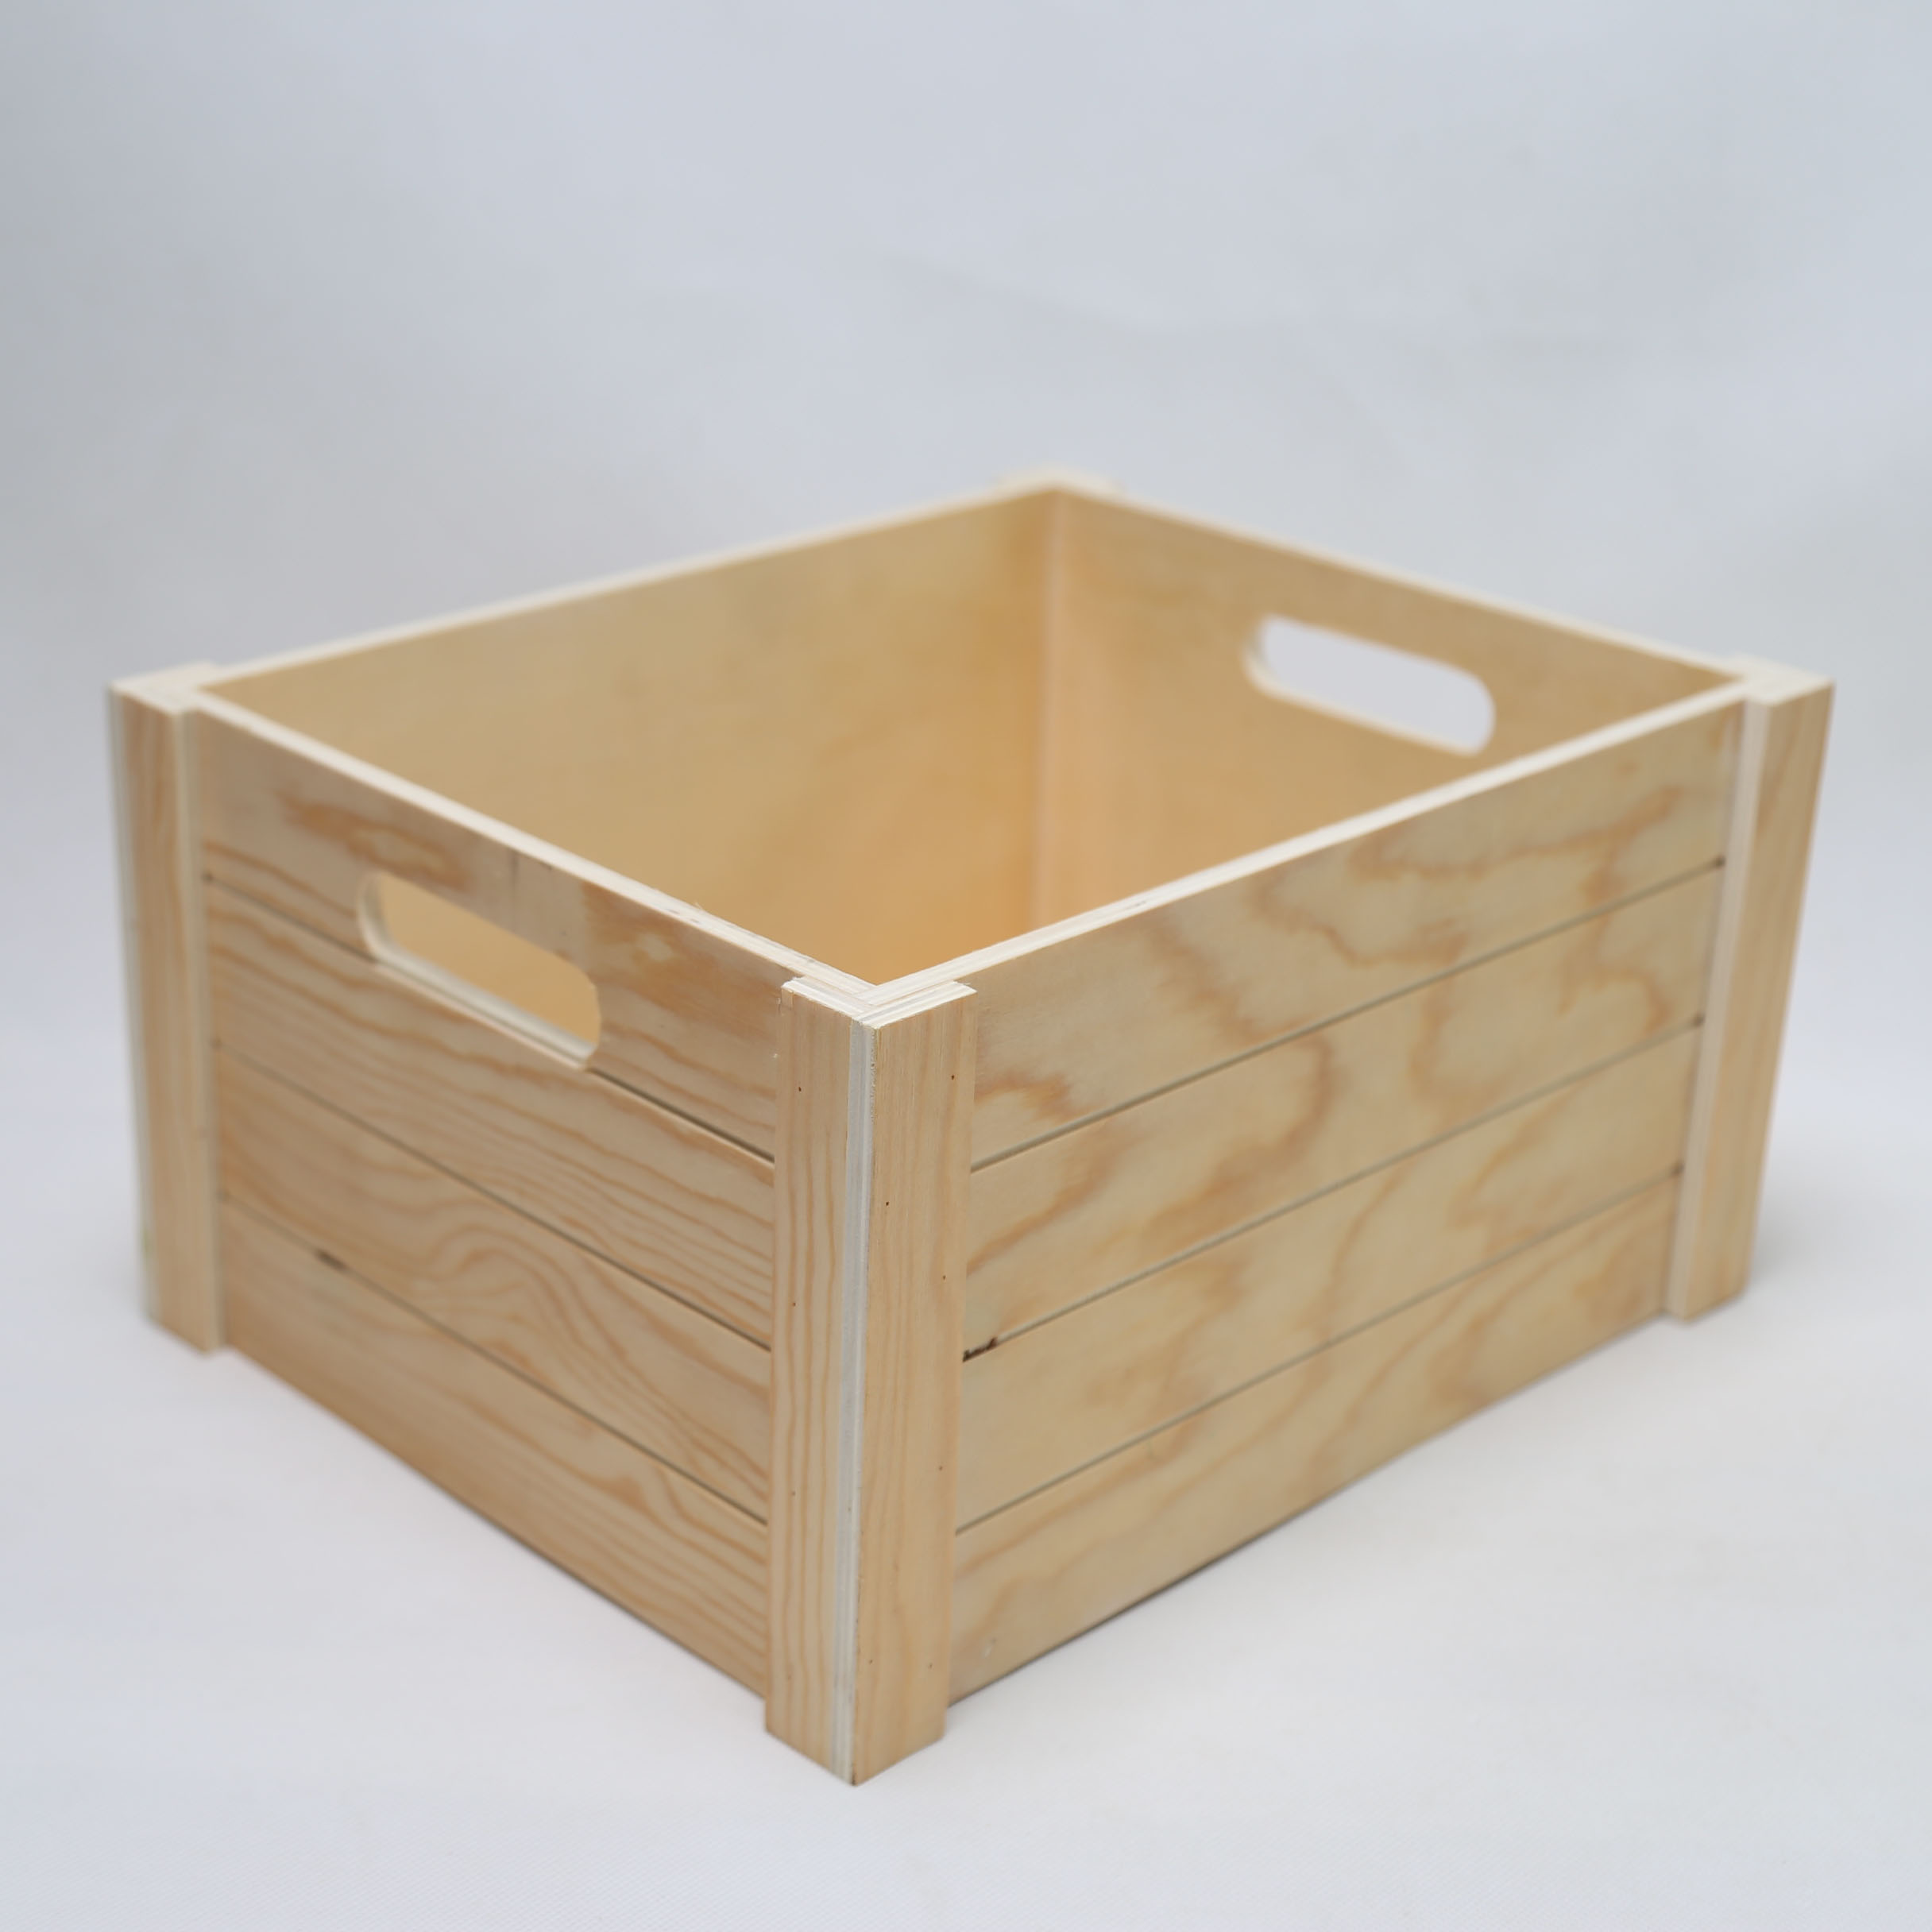 2016 Best Selling Products Small Wood Wine Case Box Crate Buy Portable Wine Case Wooden Fruit Crate Boxes Unfinished Wood Case Product On